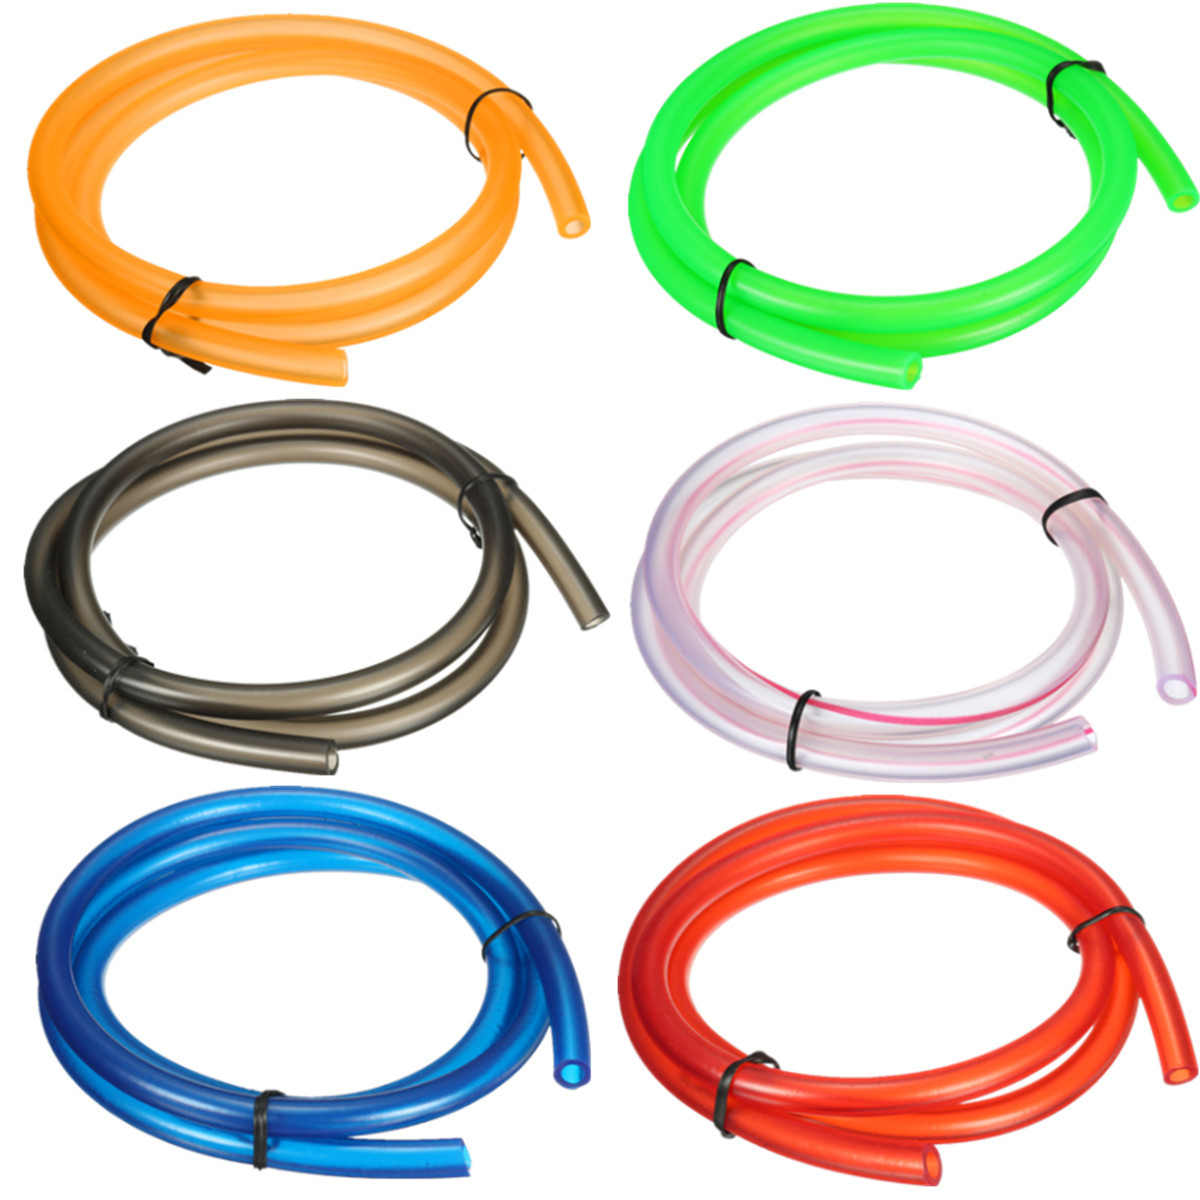 Hose Pipe-Tube Dirt-Bike Moto Fuel-Line Petrol Nylon Suzuki Honda Yamah 1M Soft for Mini